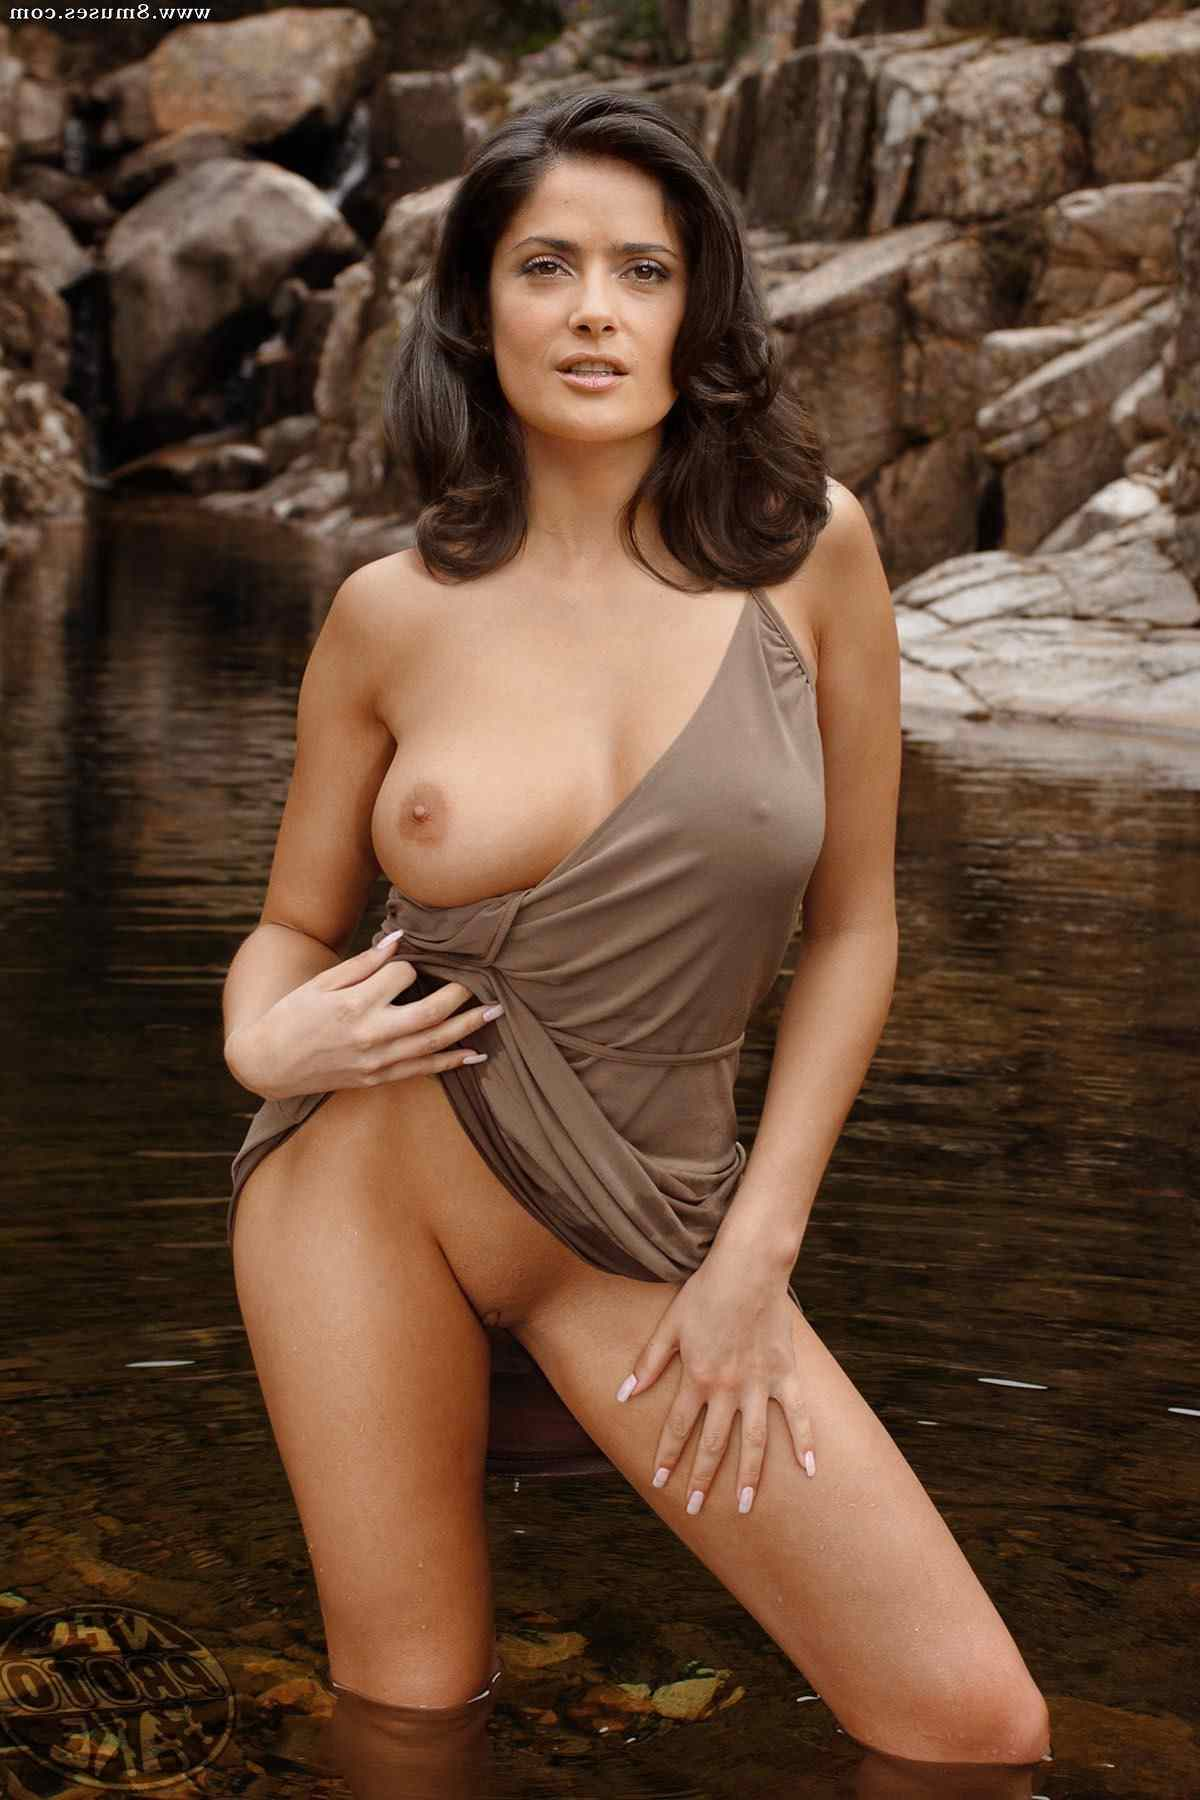 Fake-Celebrities-Sex-Pictures/Salma-Hayek Salma_Hayek__8muses_-_Sex_and_Porn_Comics_66.jpg